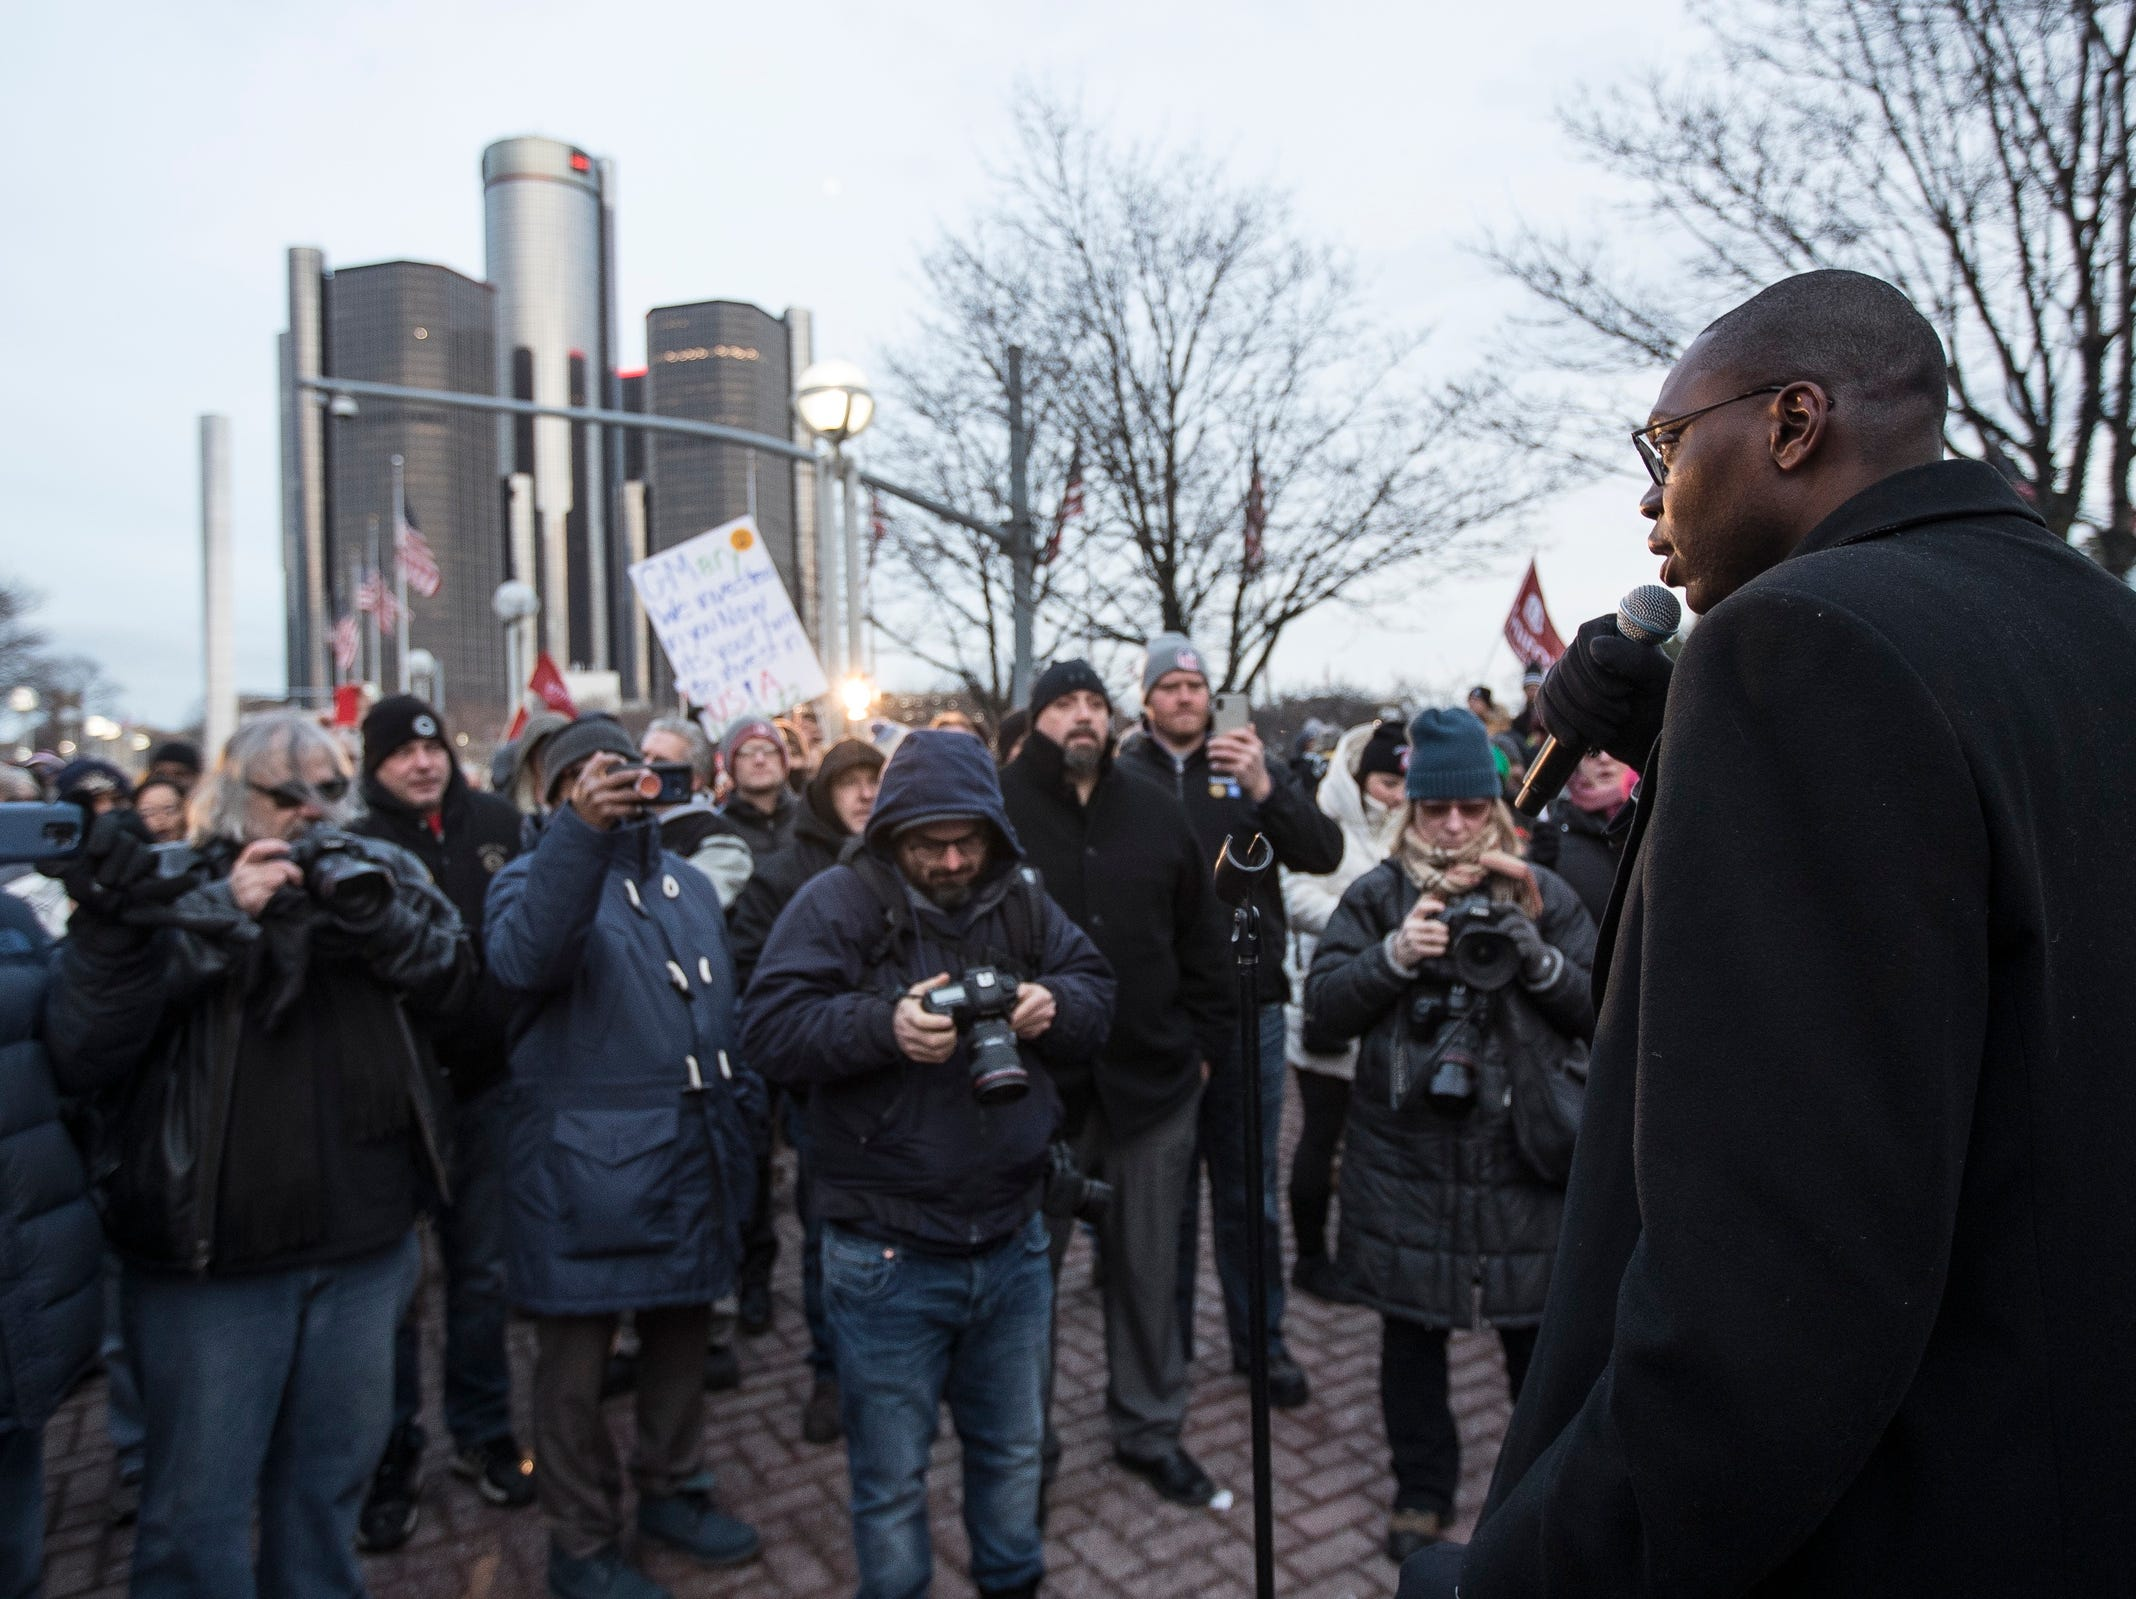 Lieutenant governor Garlin Gilchrist II speaks during the UAW pre-charity preview candlelight vigil at the Hart Plaza in Detroit on Friday, January 18, 2019.